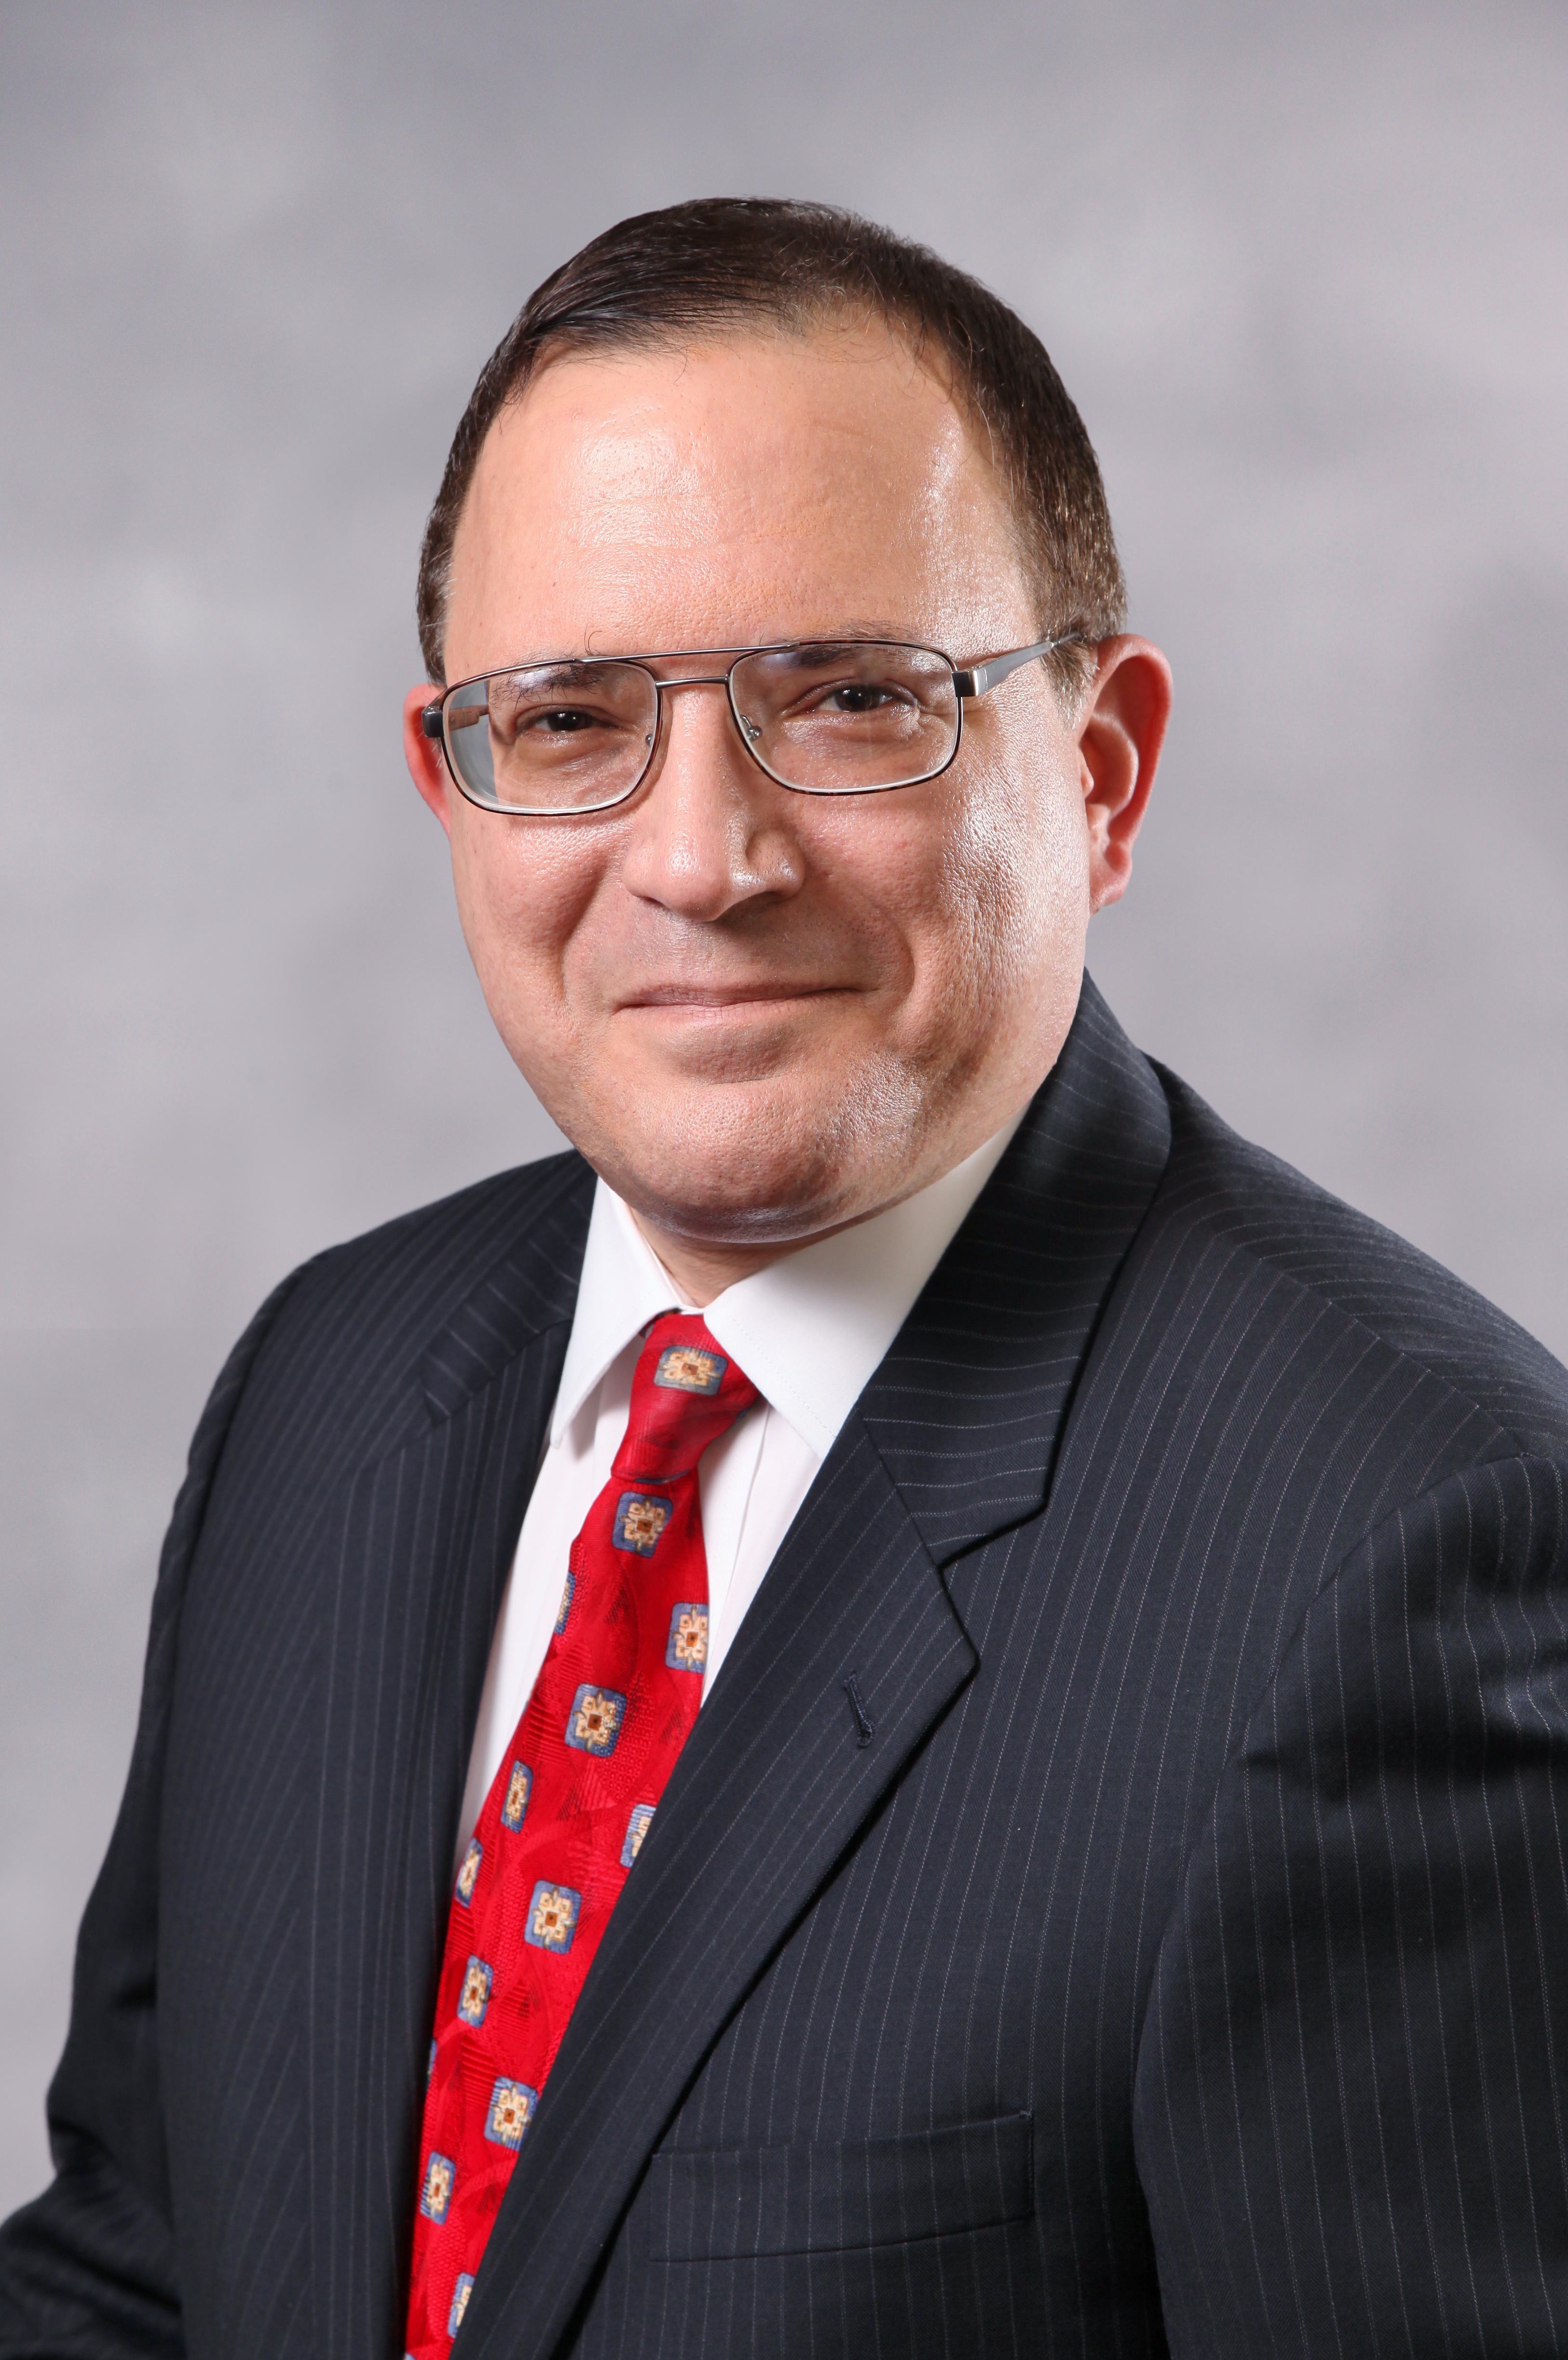 Andrew Pearlman, MD : Lake Success / Hauppauge